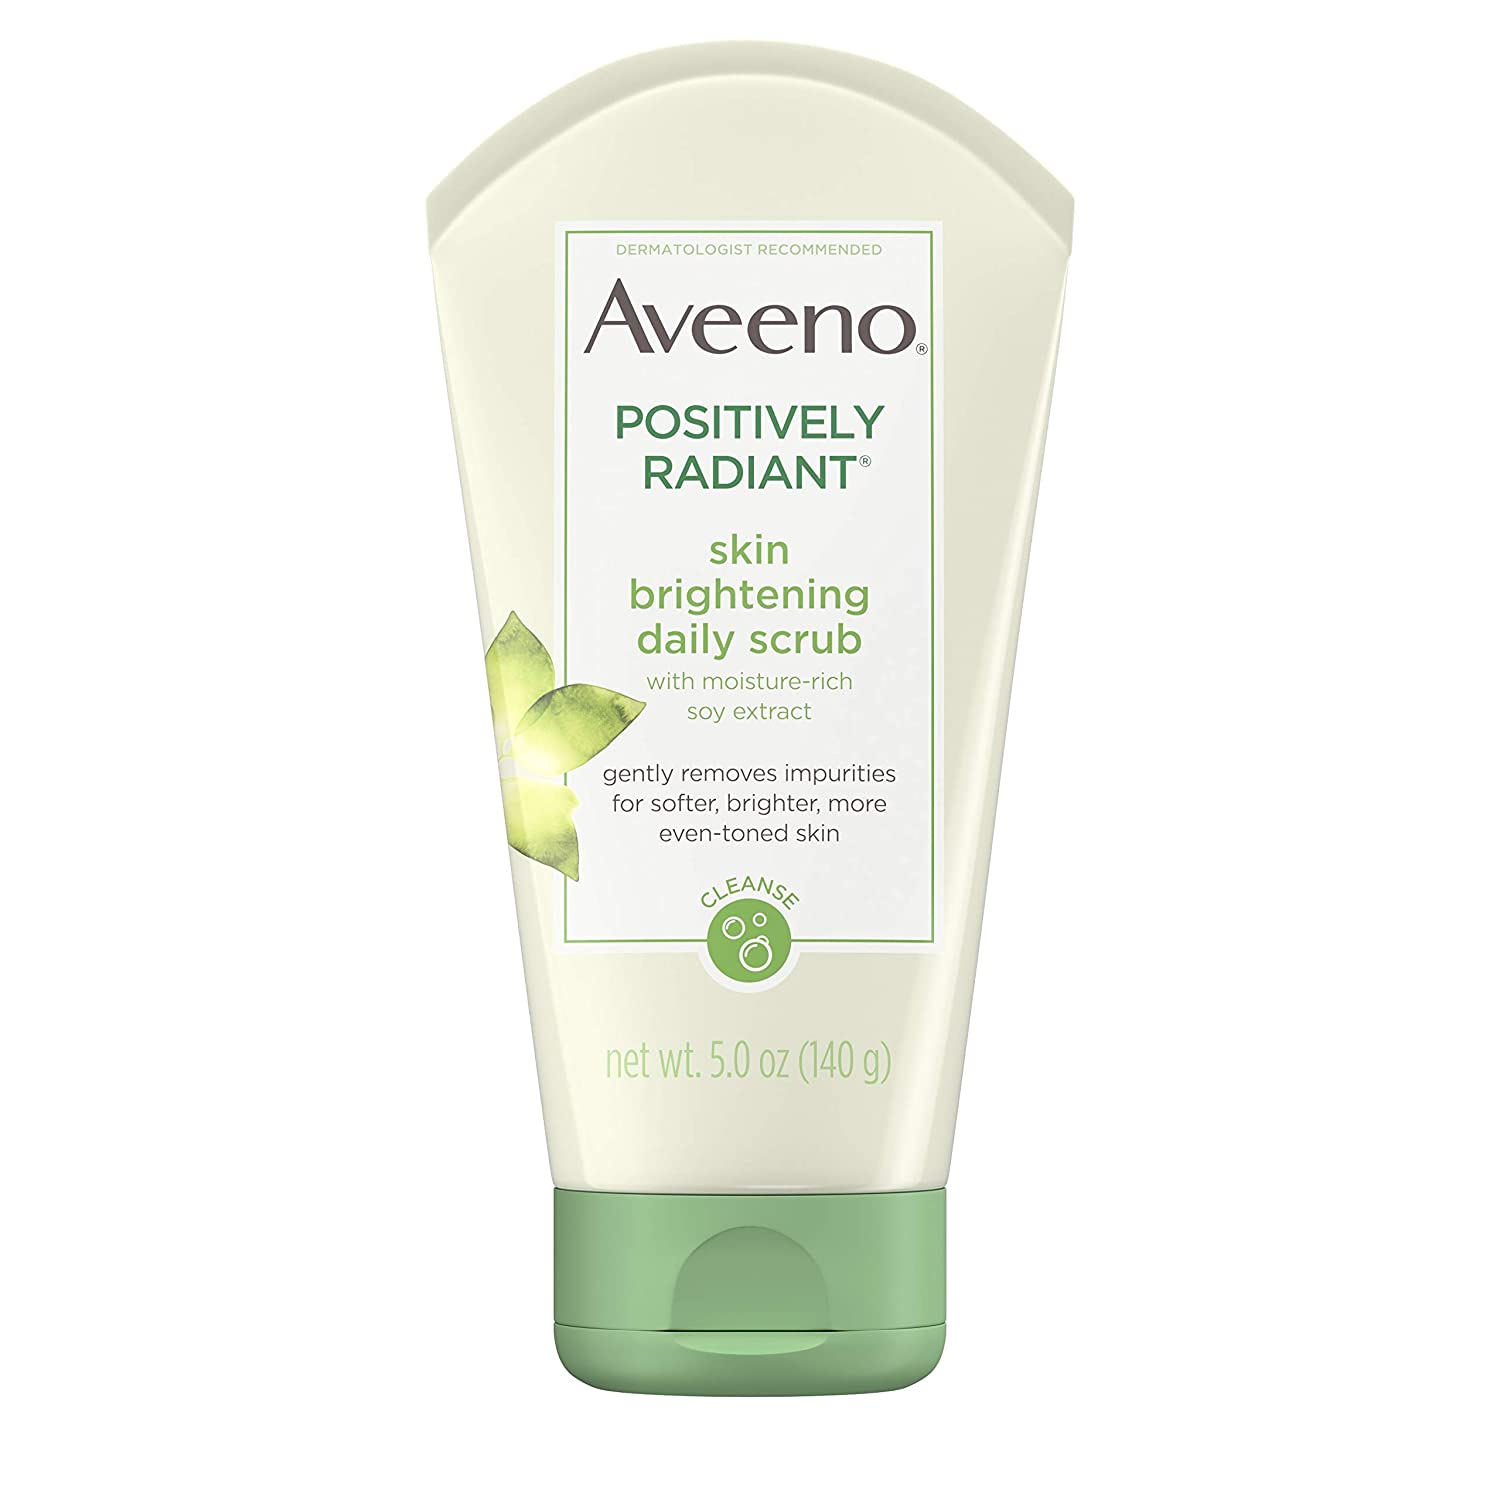 Aveeno Positively Radiant Brightening Daily Scrub 5 Ounce (Pack of 1)